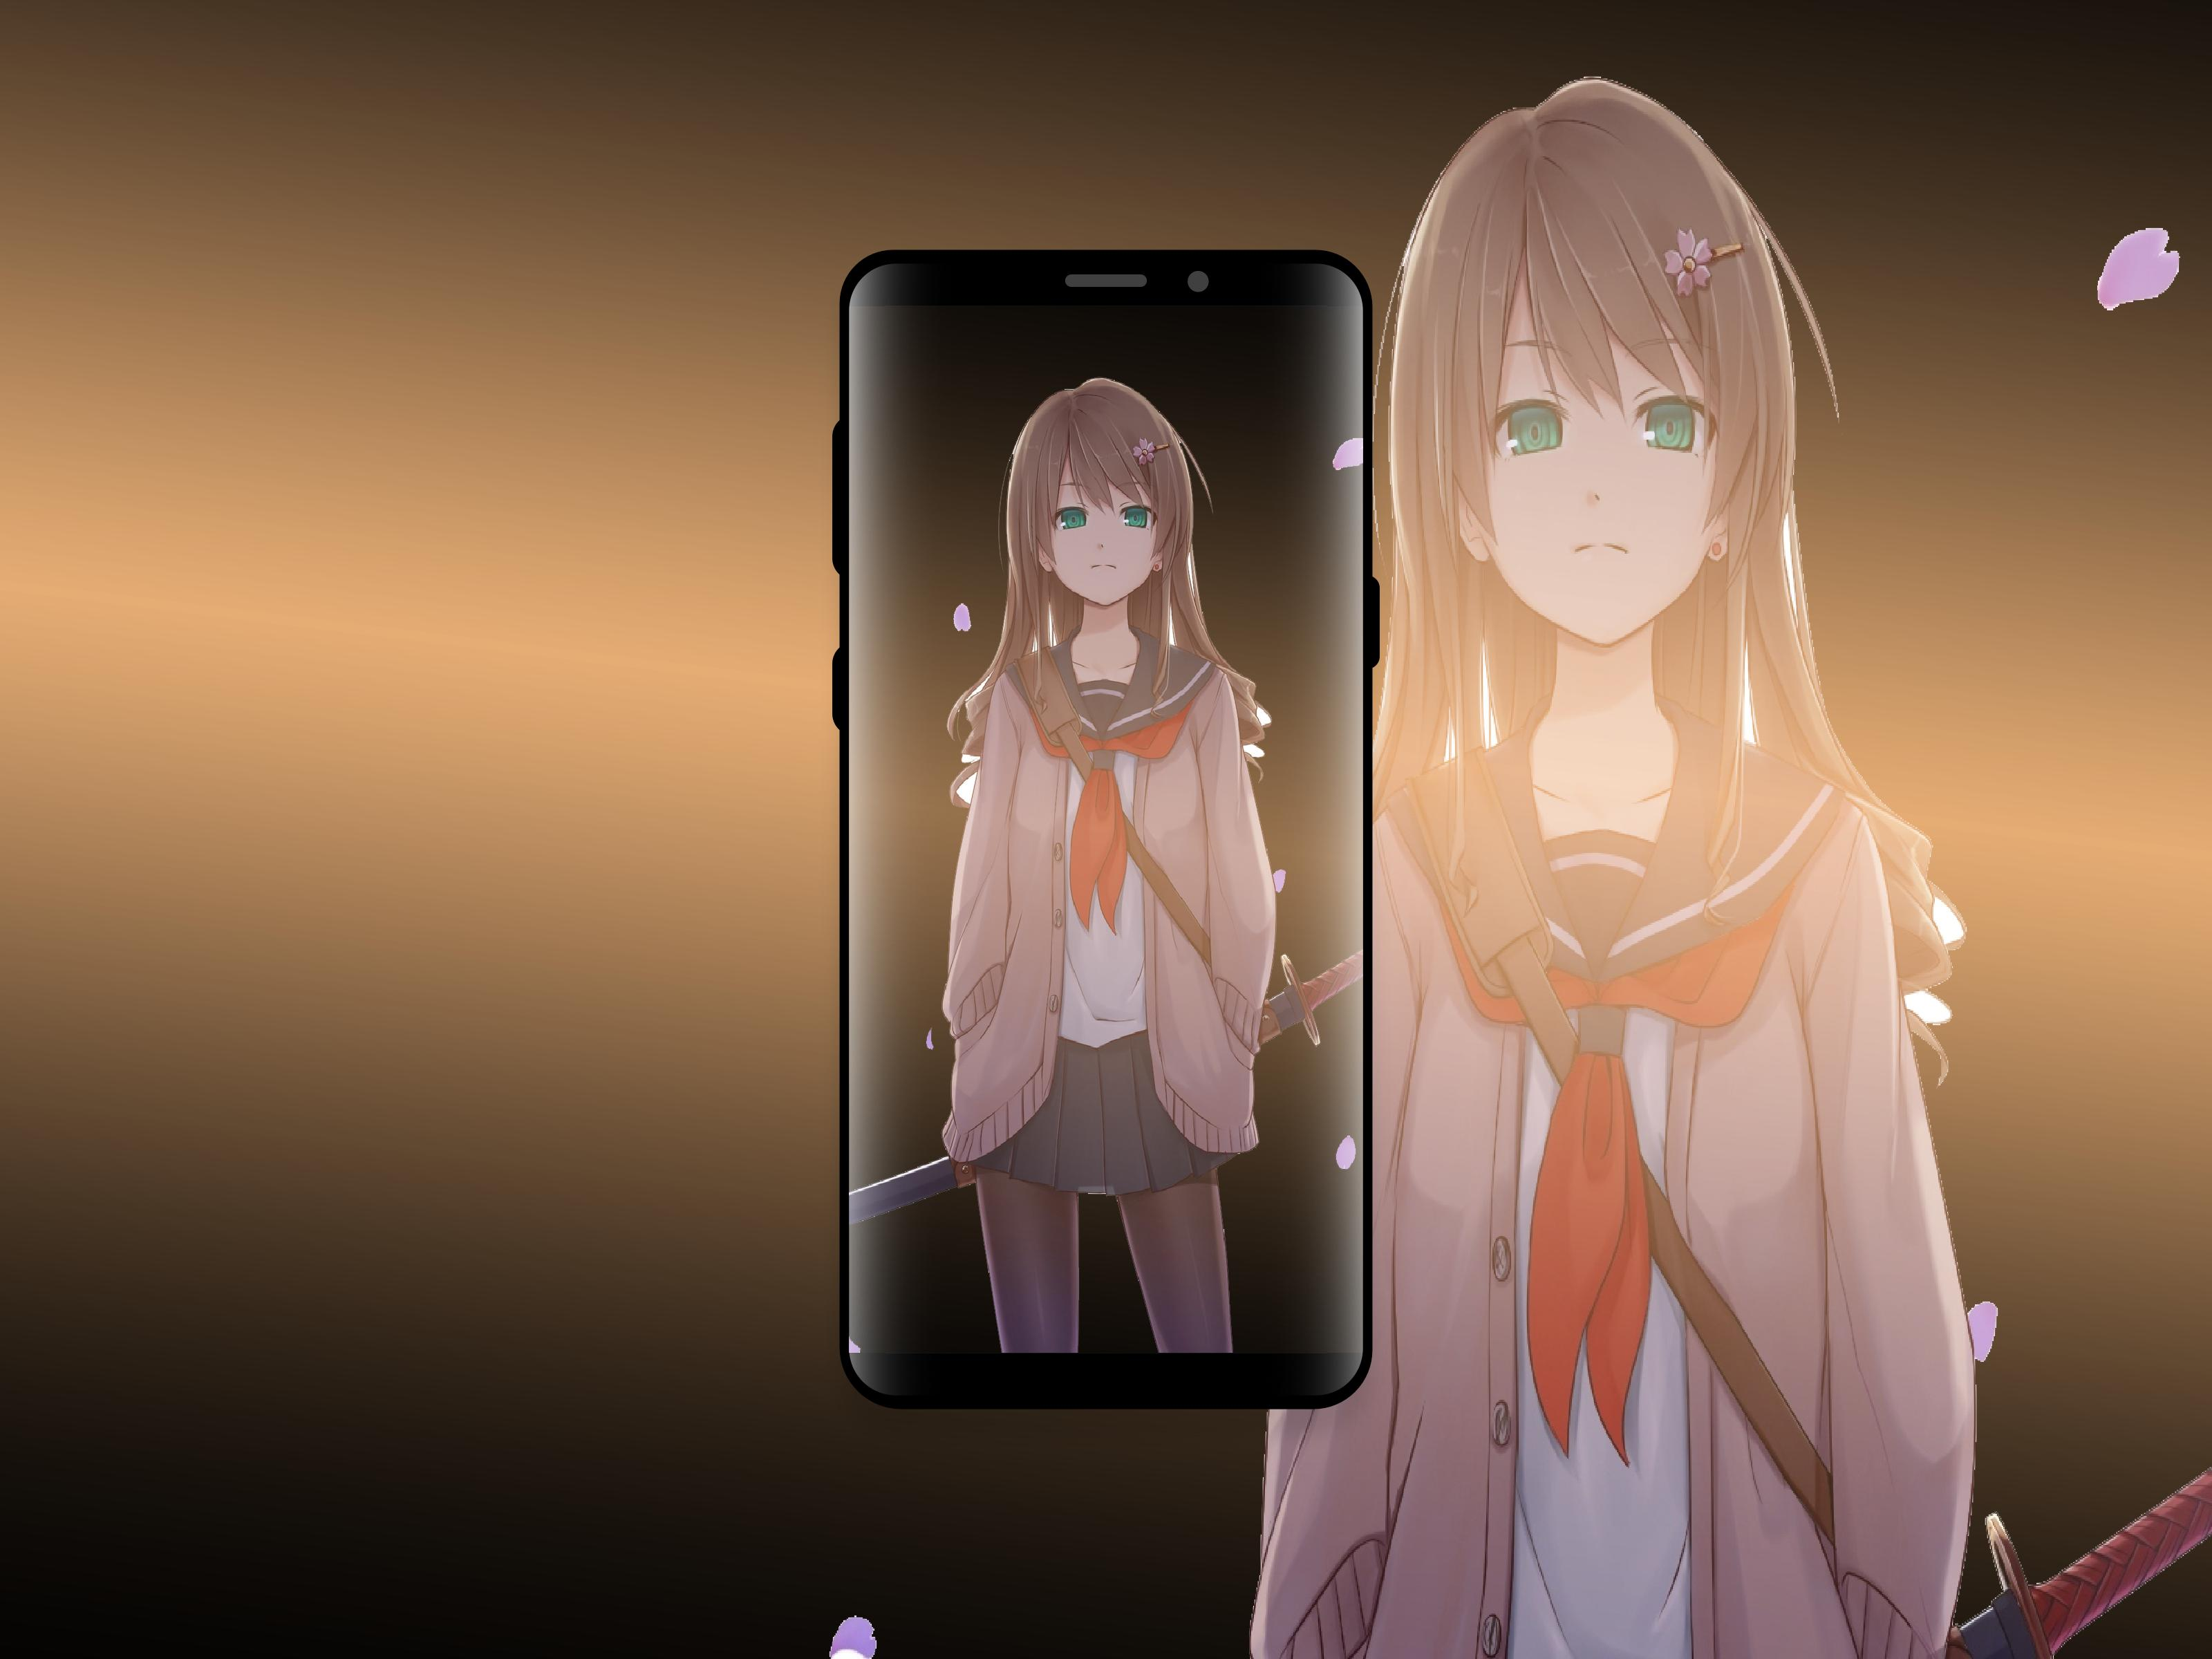 Hd Wallpapers Anime For Android Apk Download